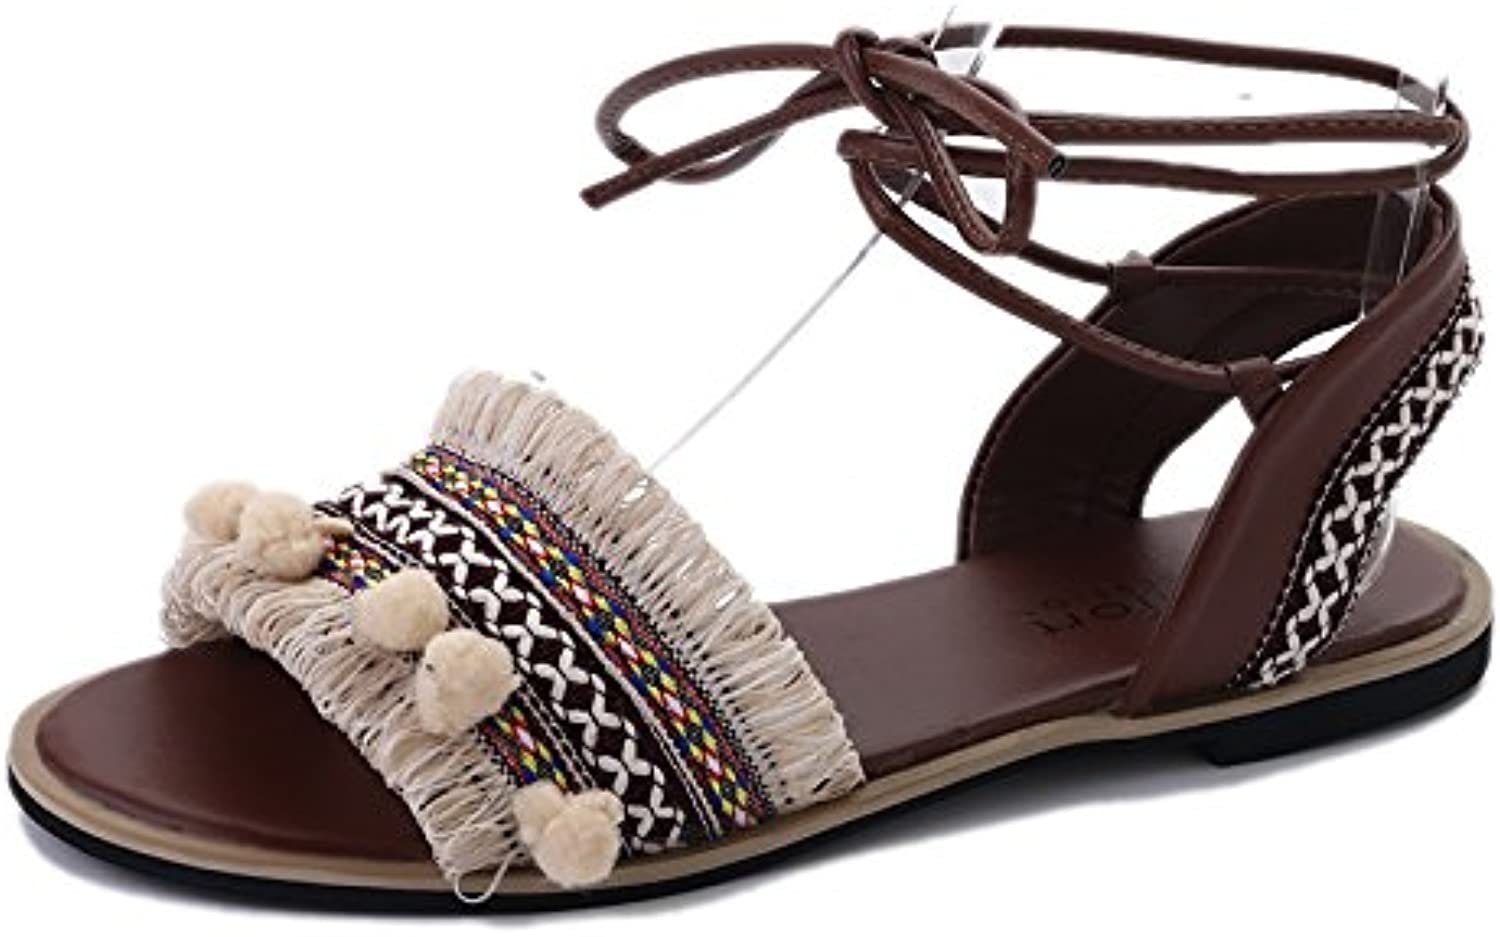 Ankle Strap Flat Sandals Open Toe Flat Sandals Fringe Cross-Tied Women Style Sandals